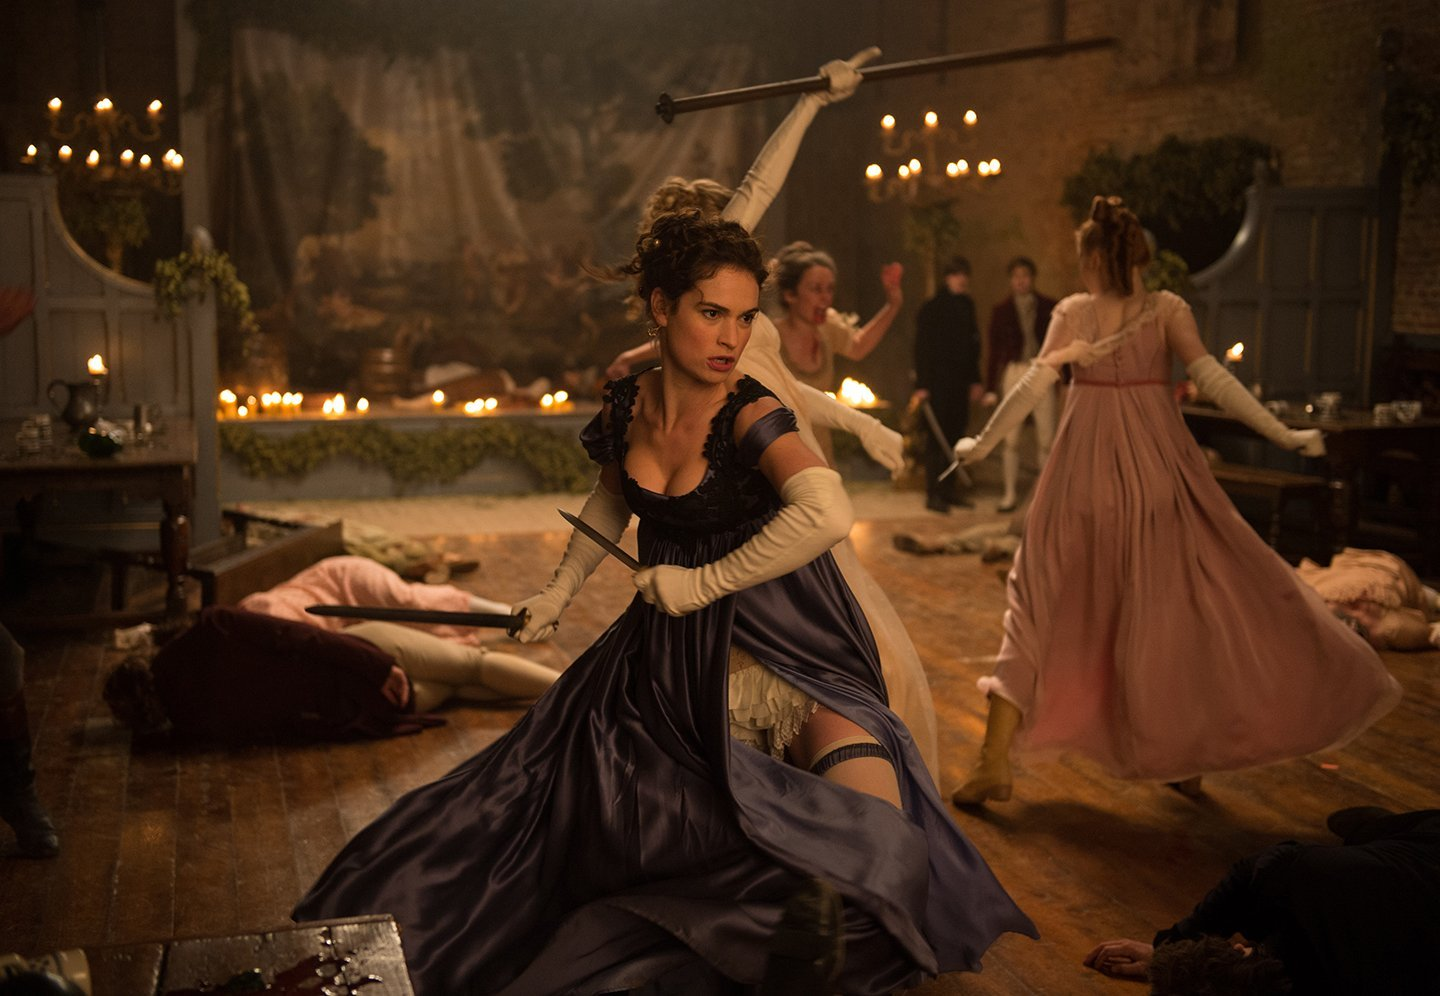 Lily James as Elizabeth Bennet in Pride and Prejudice and Zombies (2016)